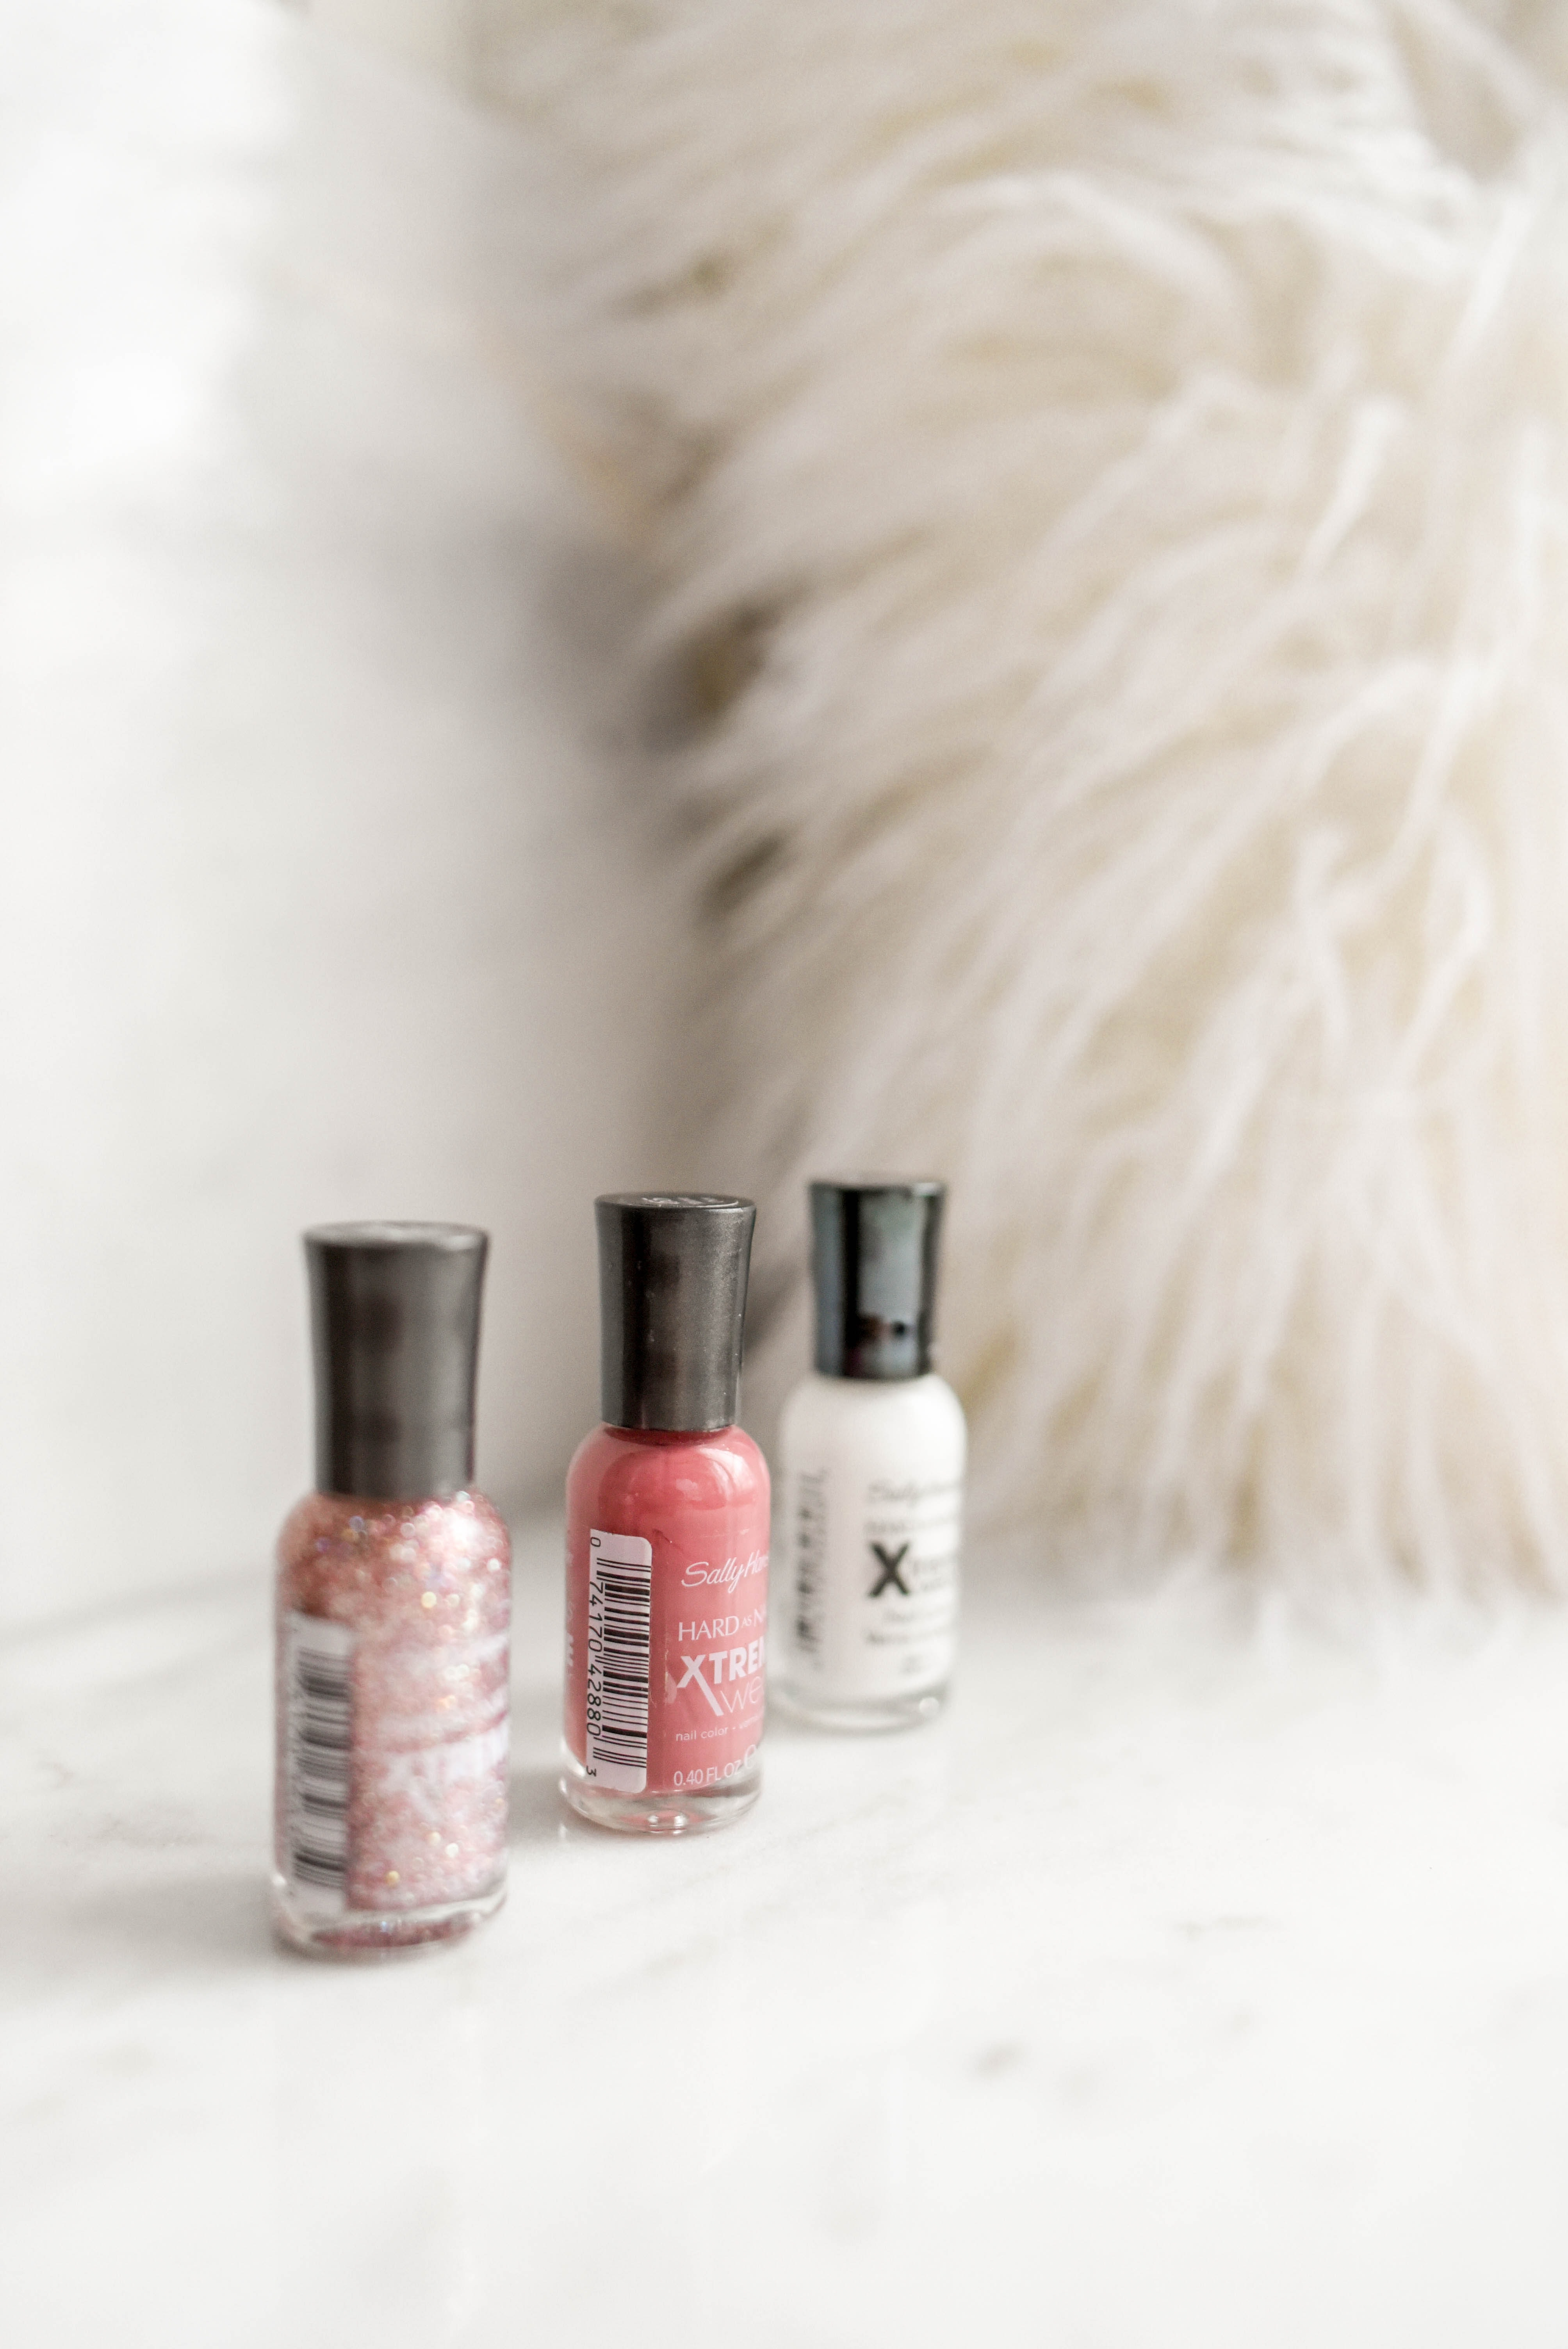 pink, red, and white nail polish bottles